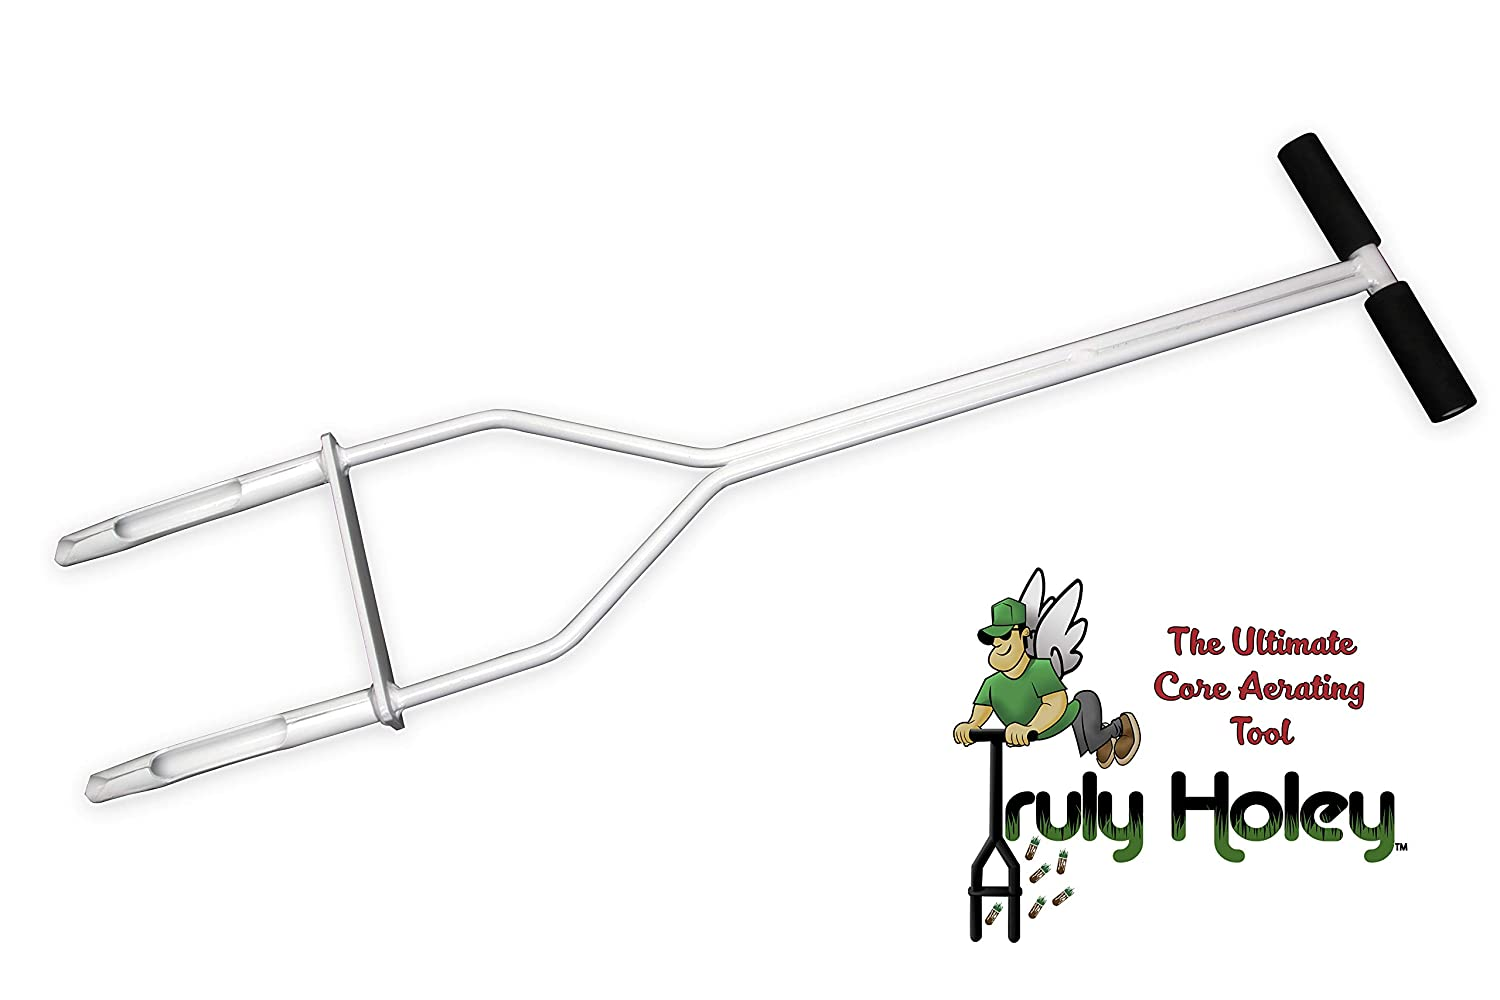 Truly Holey Manual Lawn Aerator Tool - 5 Pounds - Two Prong - Foot Bar - 40 in Height, 7 ½ in Wide